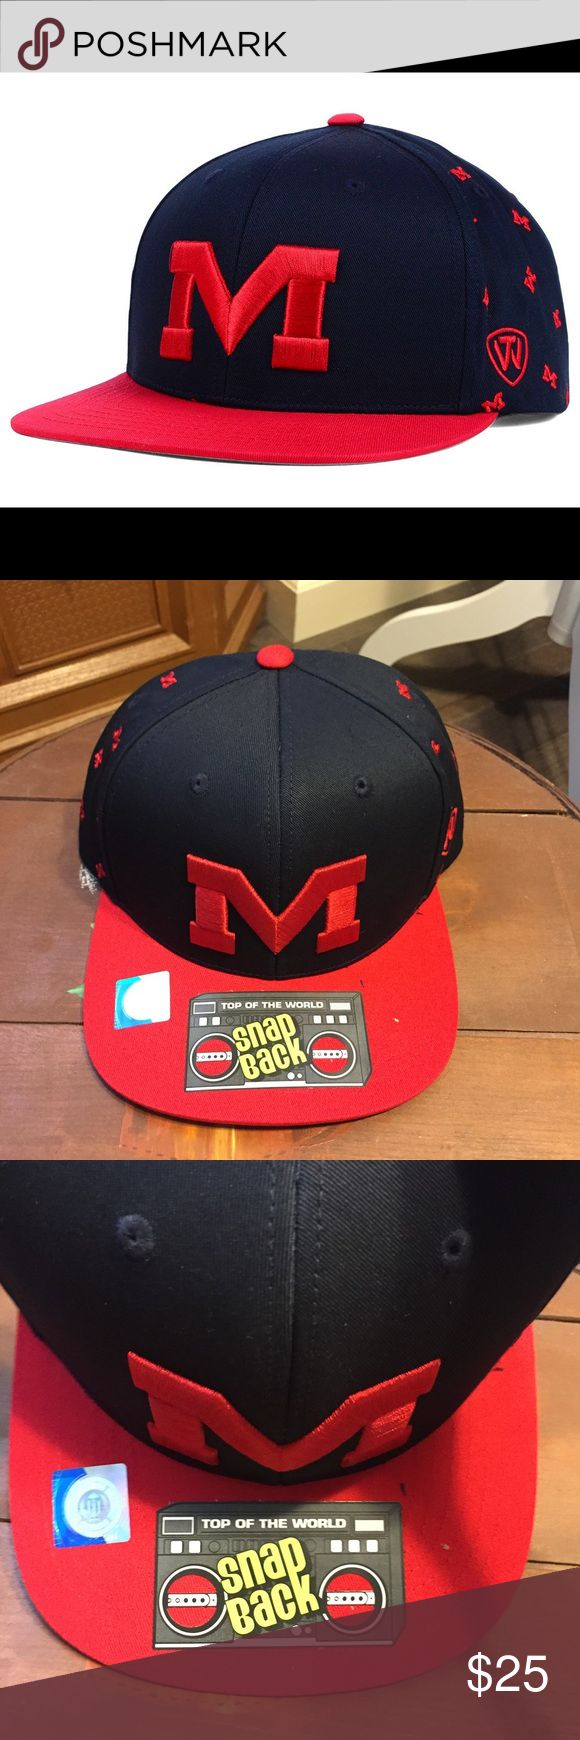 🆕 Ole Miss SnapBack All Flocking NCAA Hat NWT Brand new with tags! Mississippi rebels one size adjustable Top of the World Accessories Hats